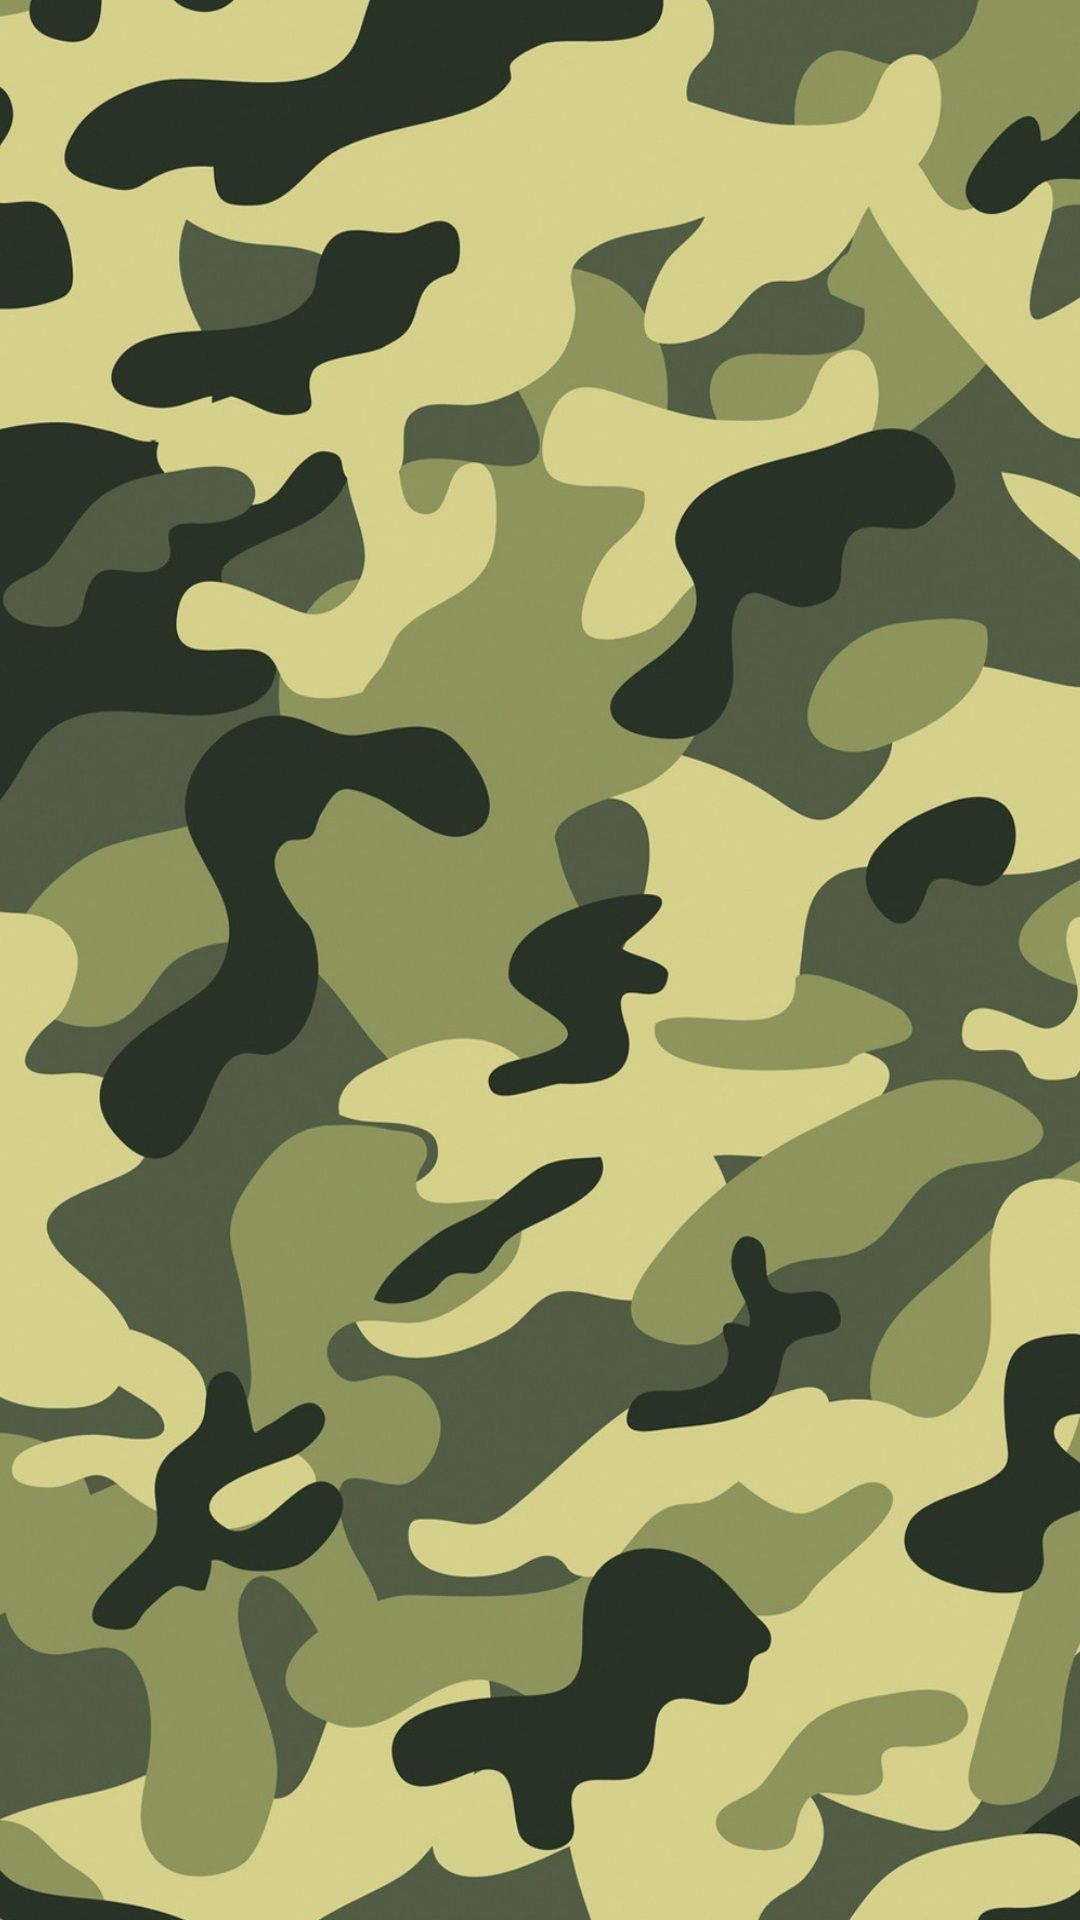 Camouflage Wallpapers Android Apps On Google Play Camouflage Wallpaper Camo Wallpaper Army Wallpaper